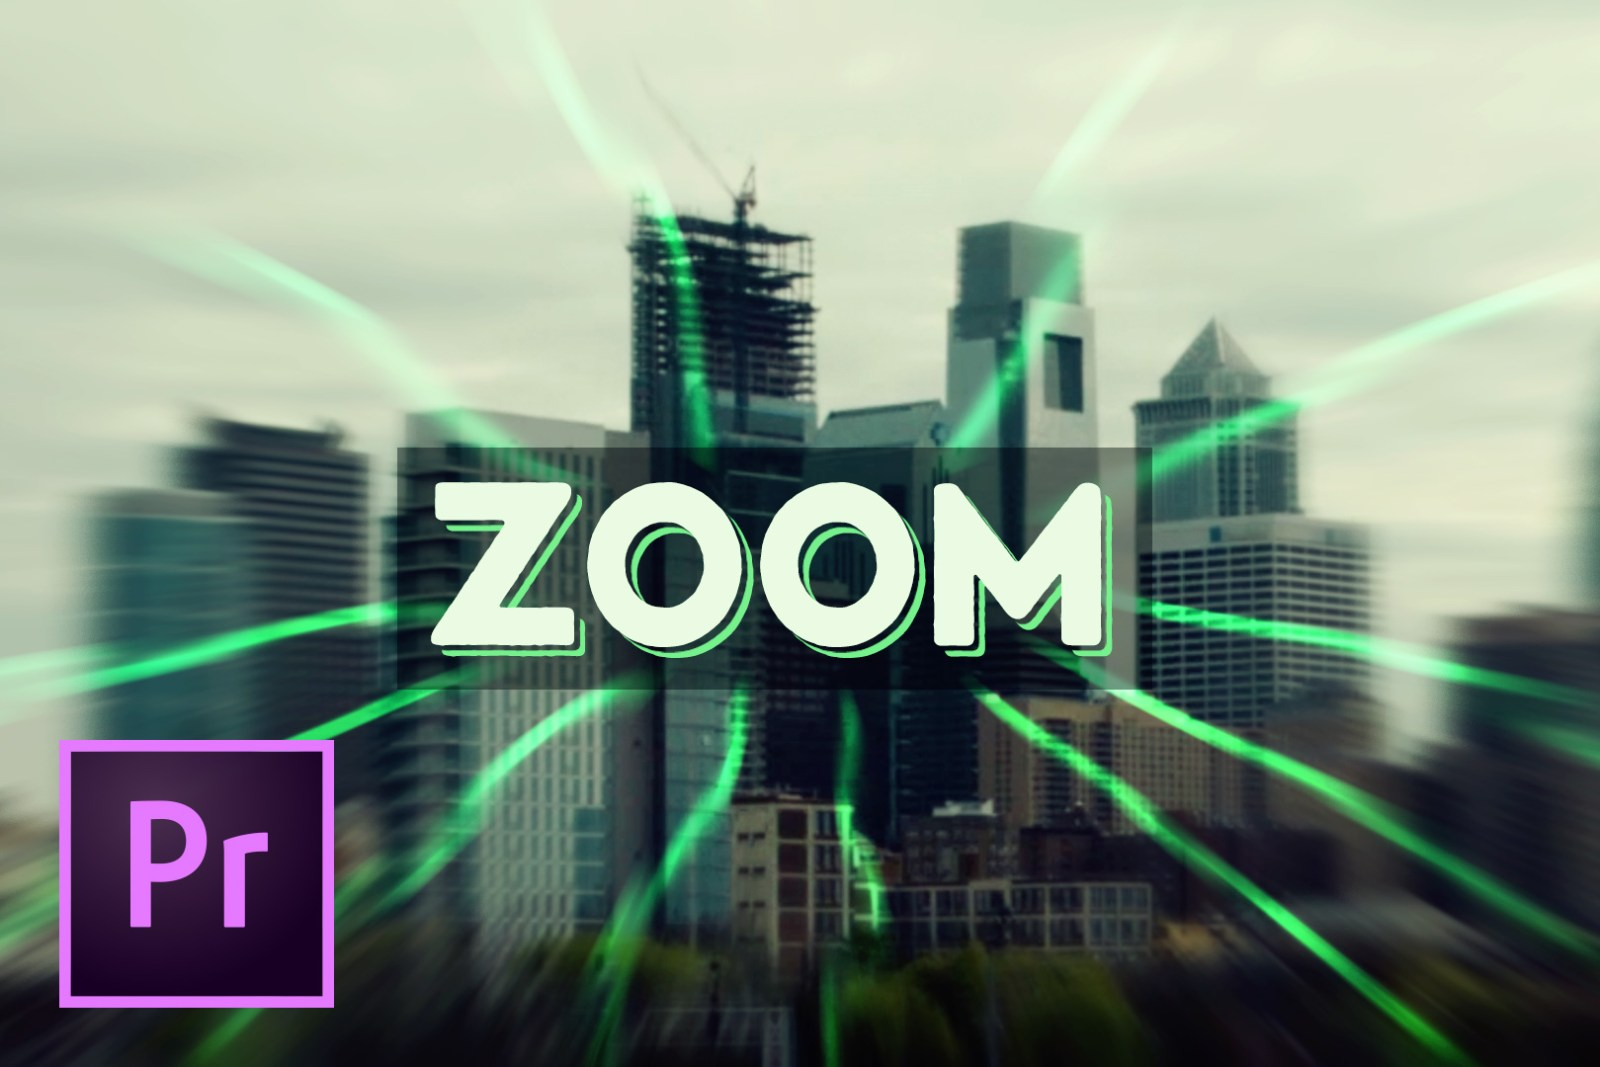 create-zoom-zooming-transition-in-premiere-pro